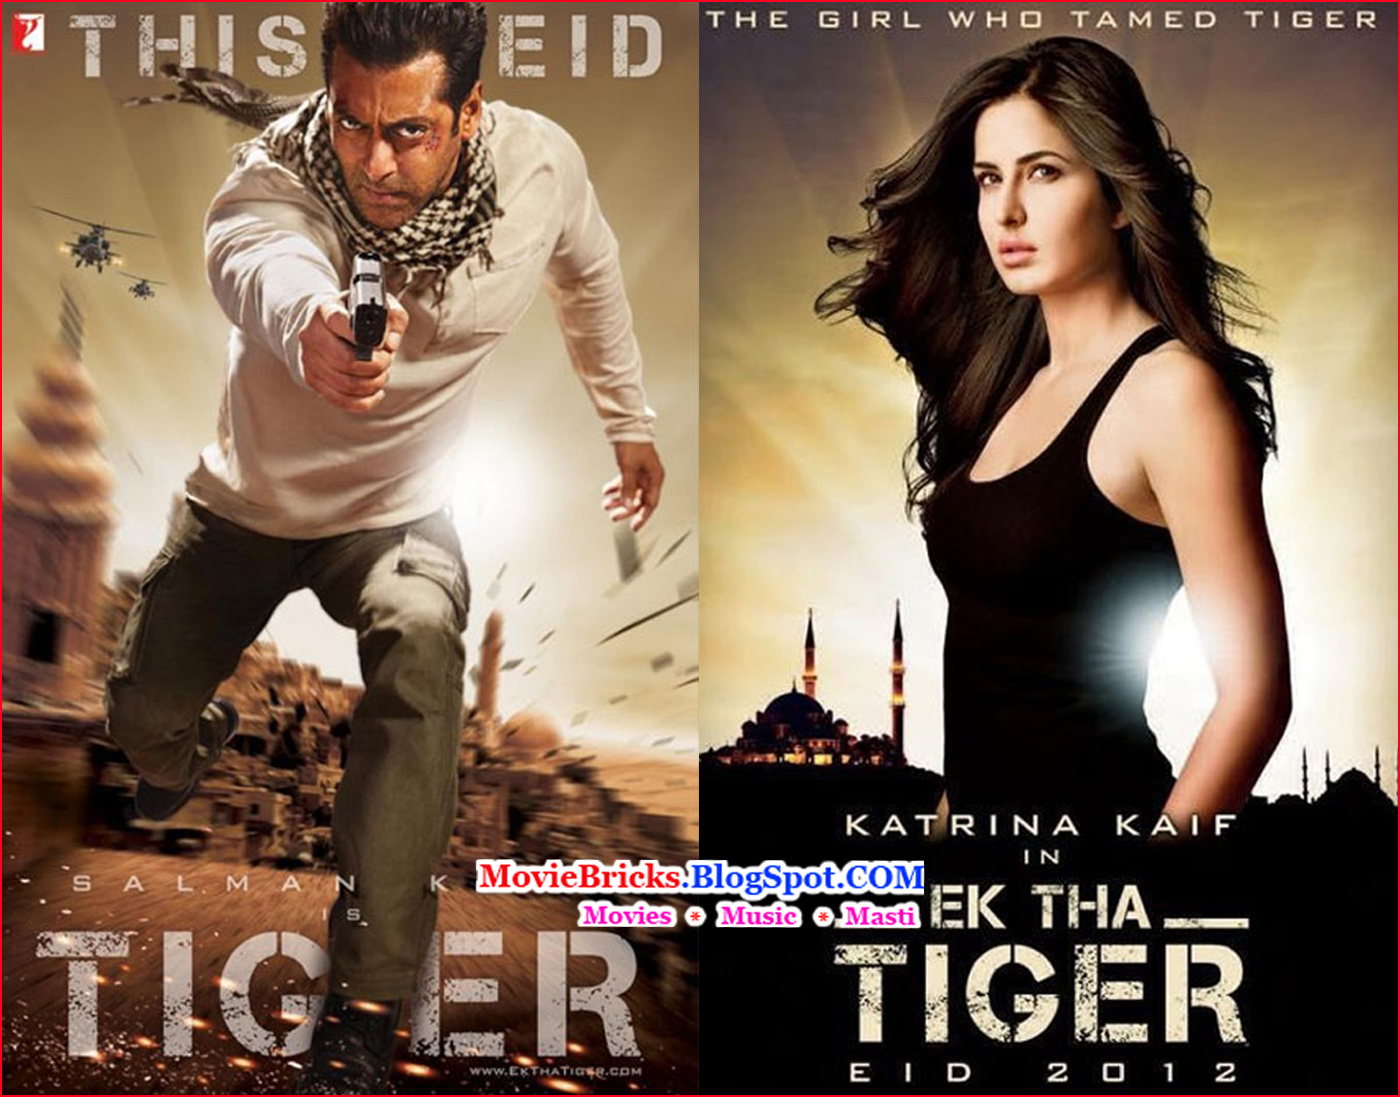 Salman Khan And Katrina Kaif In Ek Tha Tiger: Bollywood Latest Movies